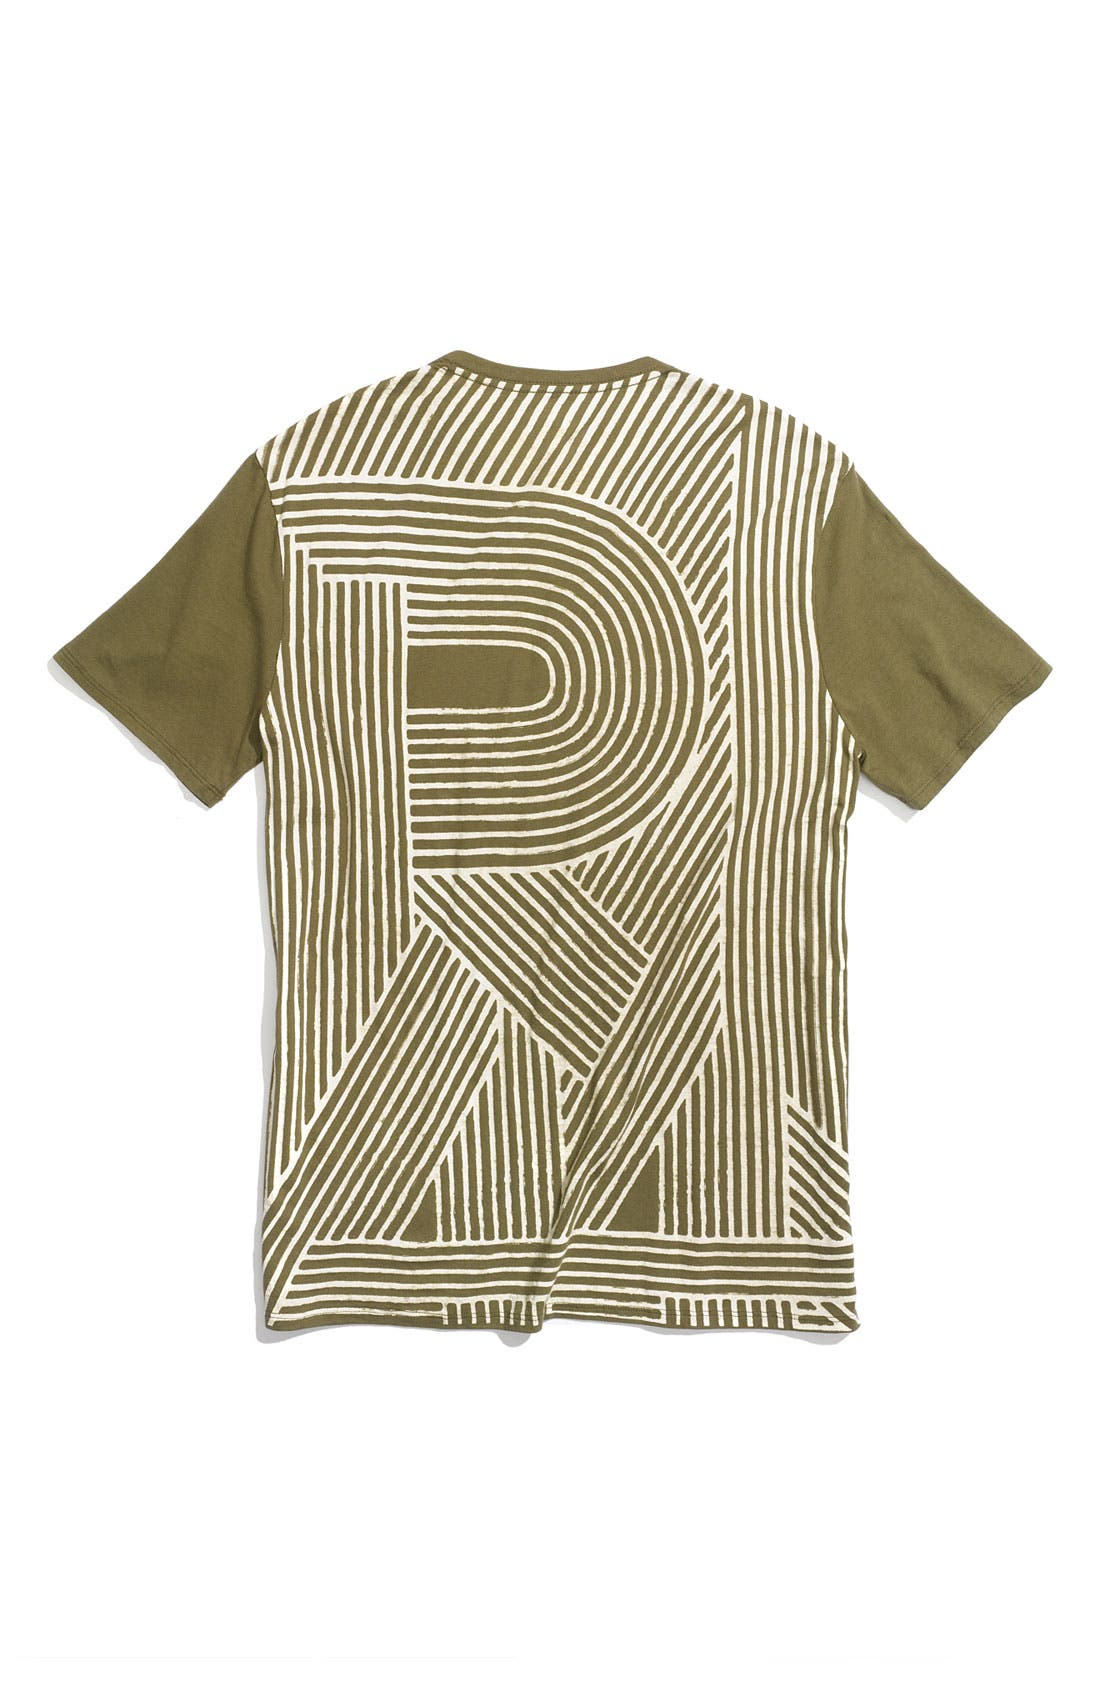 Alternate Image 1 Selected - R44 'Dazzle' Trim Fit Organic Cotton T-Shirt (Men)